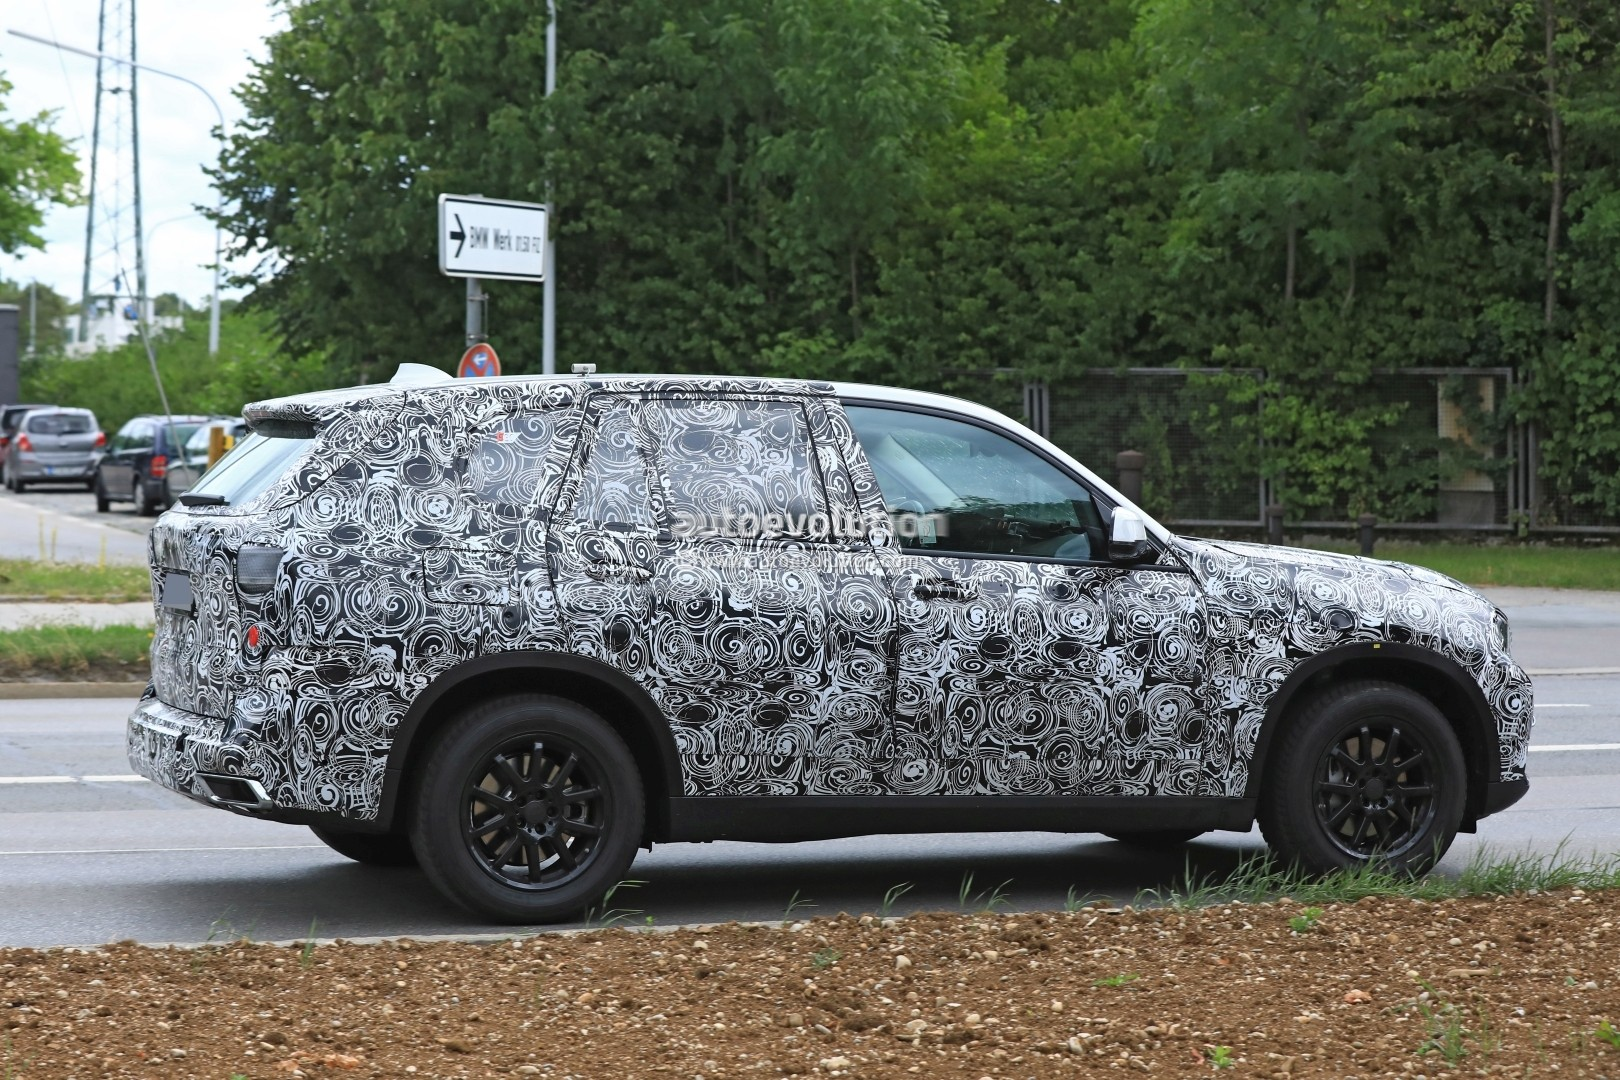 2019-bmw-x5-spied-prototype-reveals-new-angular-design-front-air-intakes_7